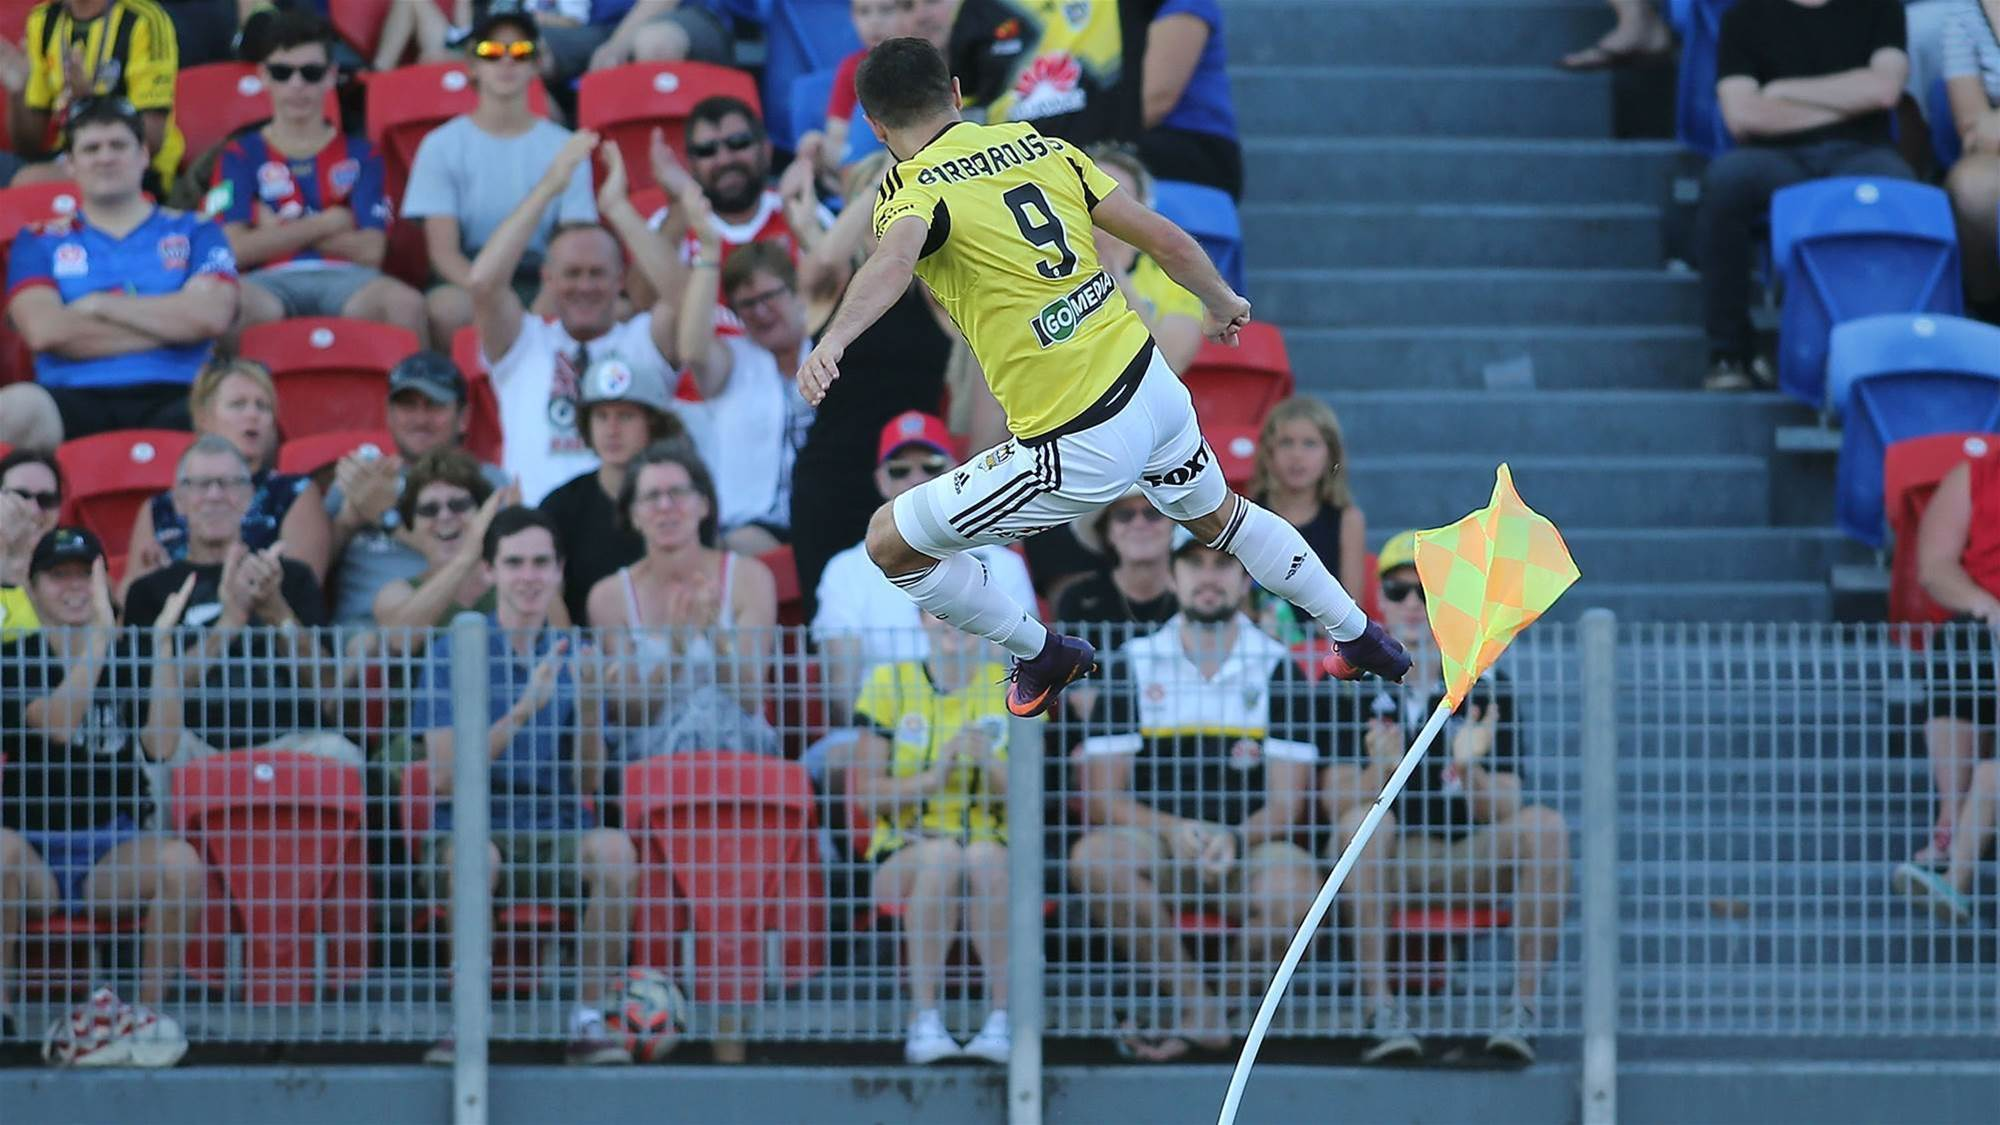 Phoenix have more 'will to win'